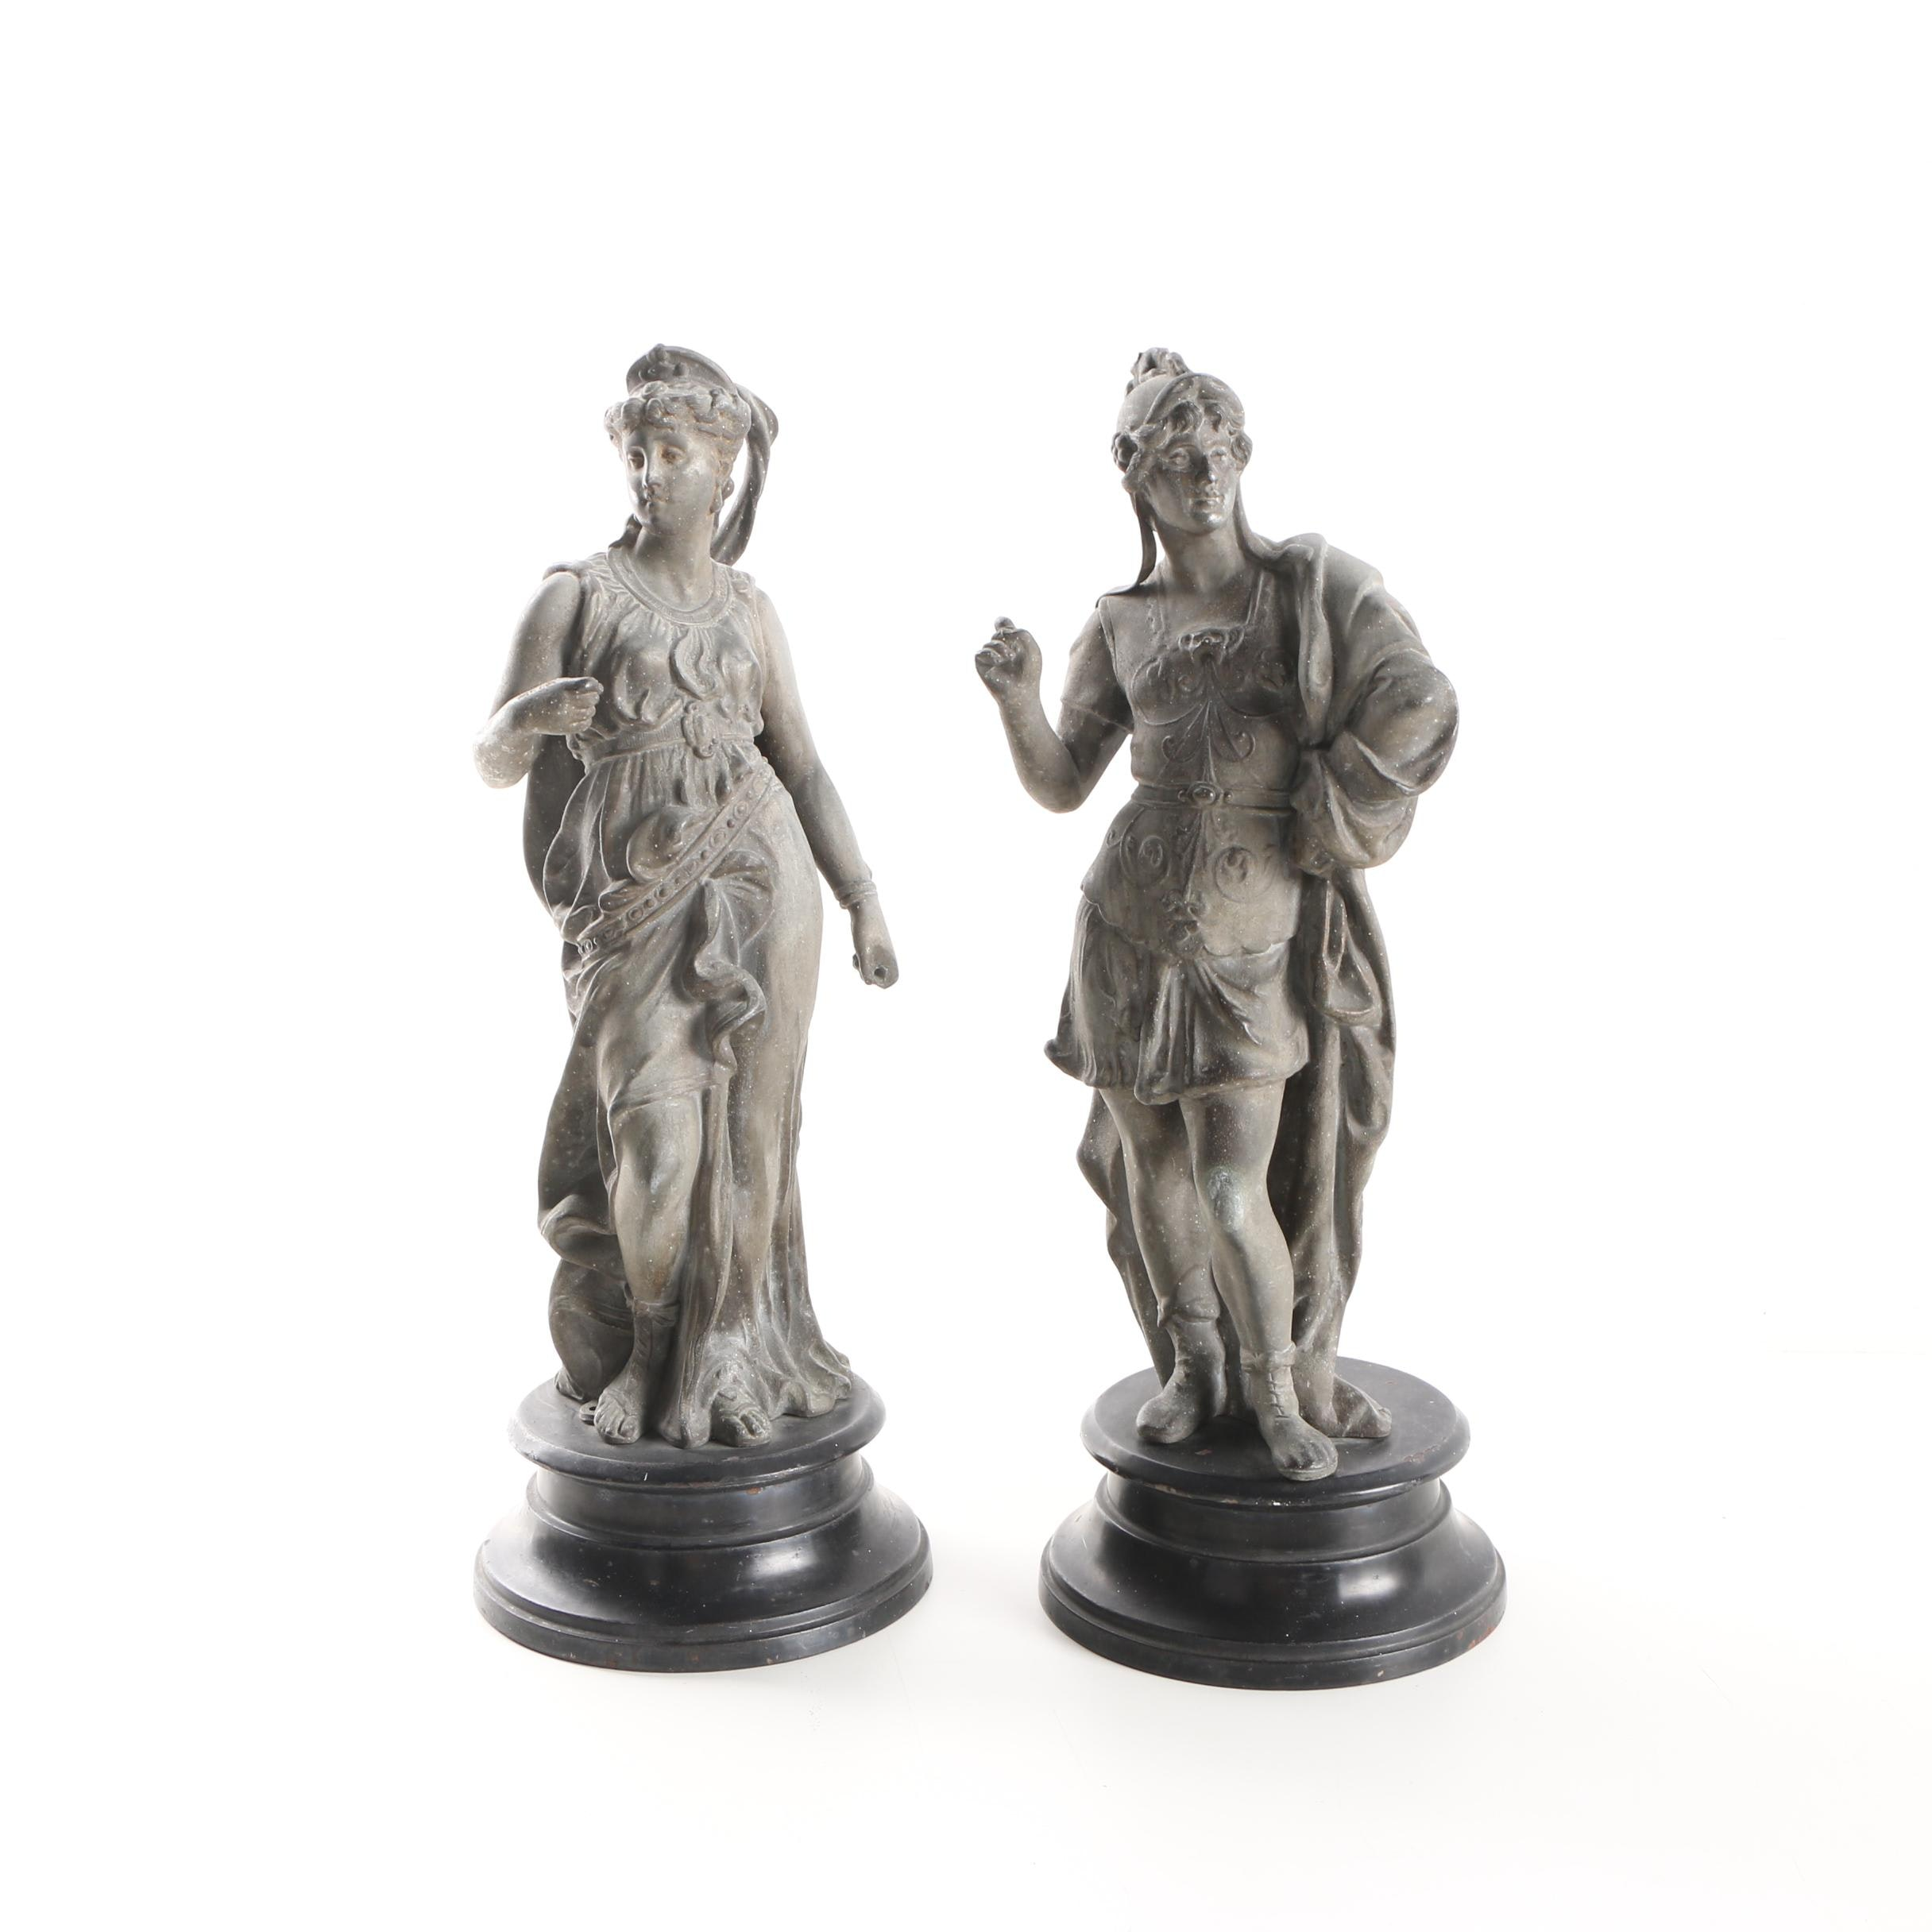 Silver Tone Metal Sculptures of Greco-Roman Style Figures